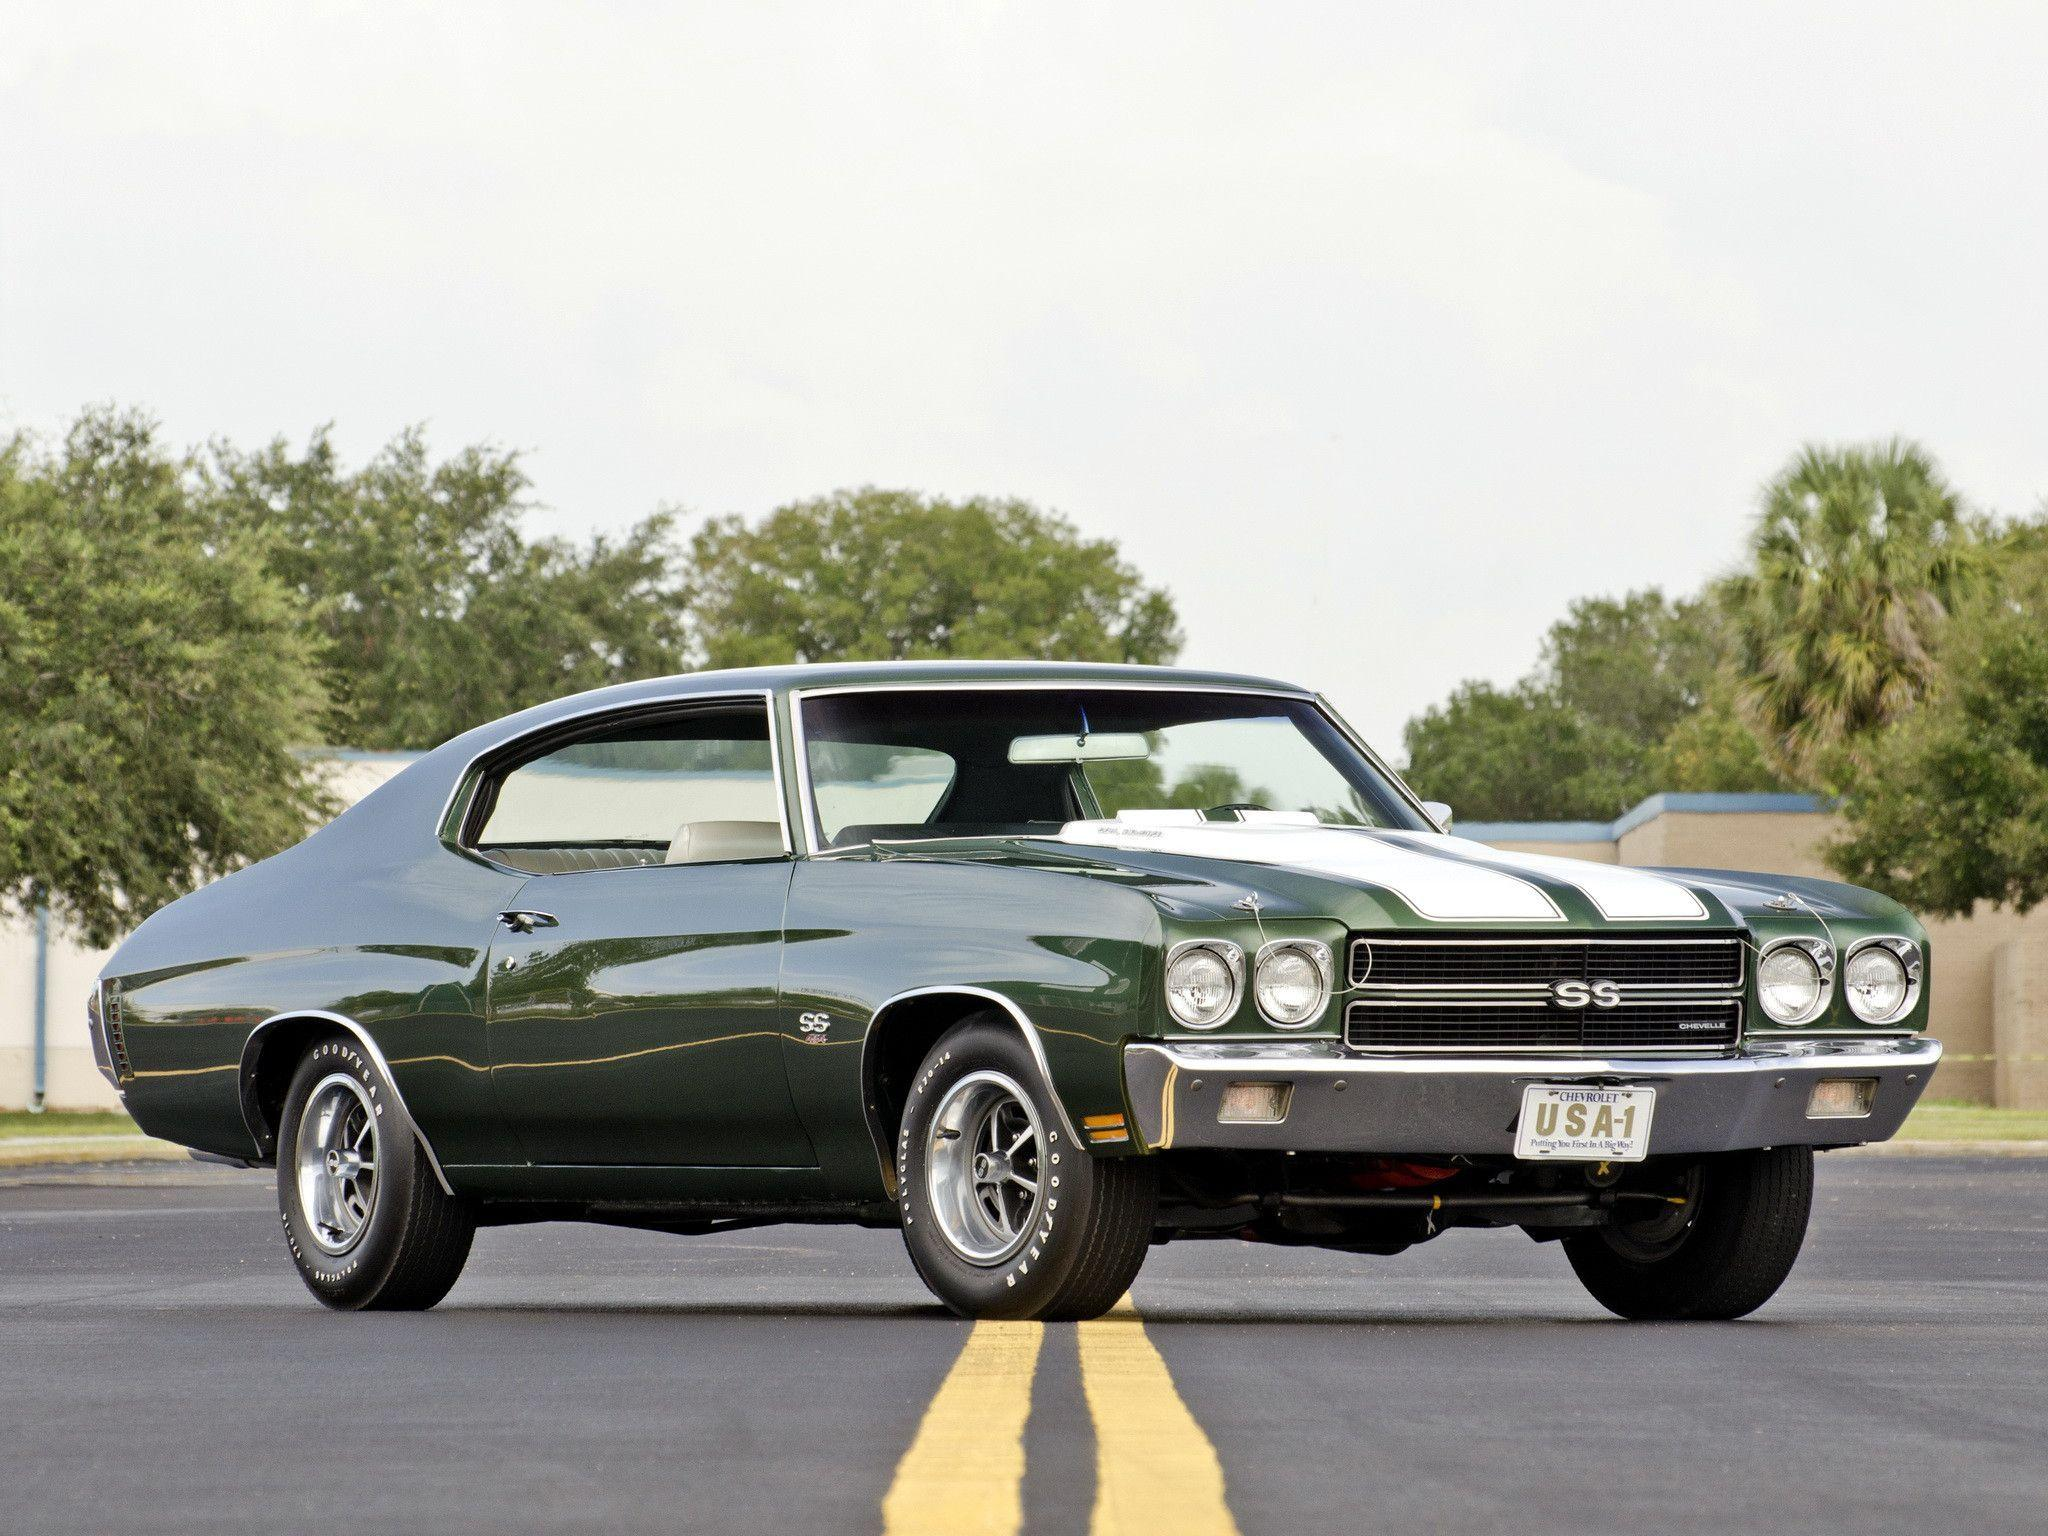 Chevrolet Chevelle Ss 454 Wallpapers Wallpaper Cave